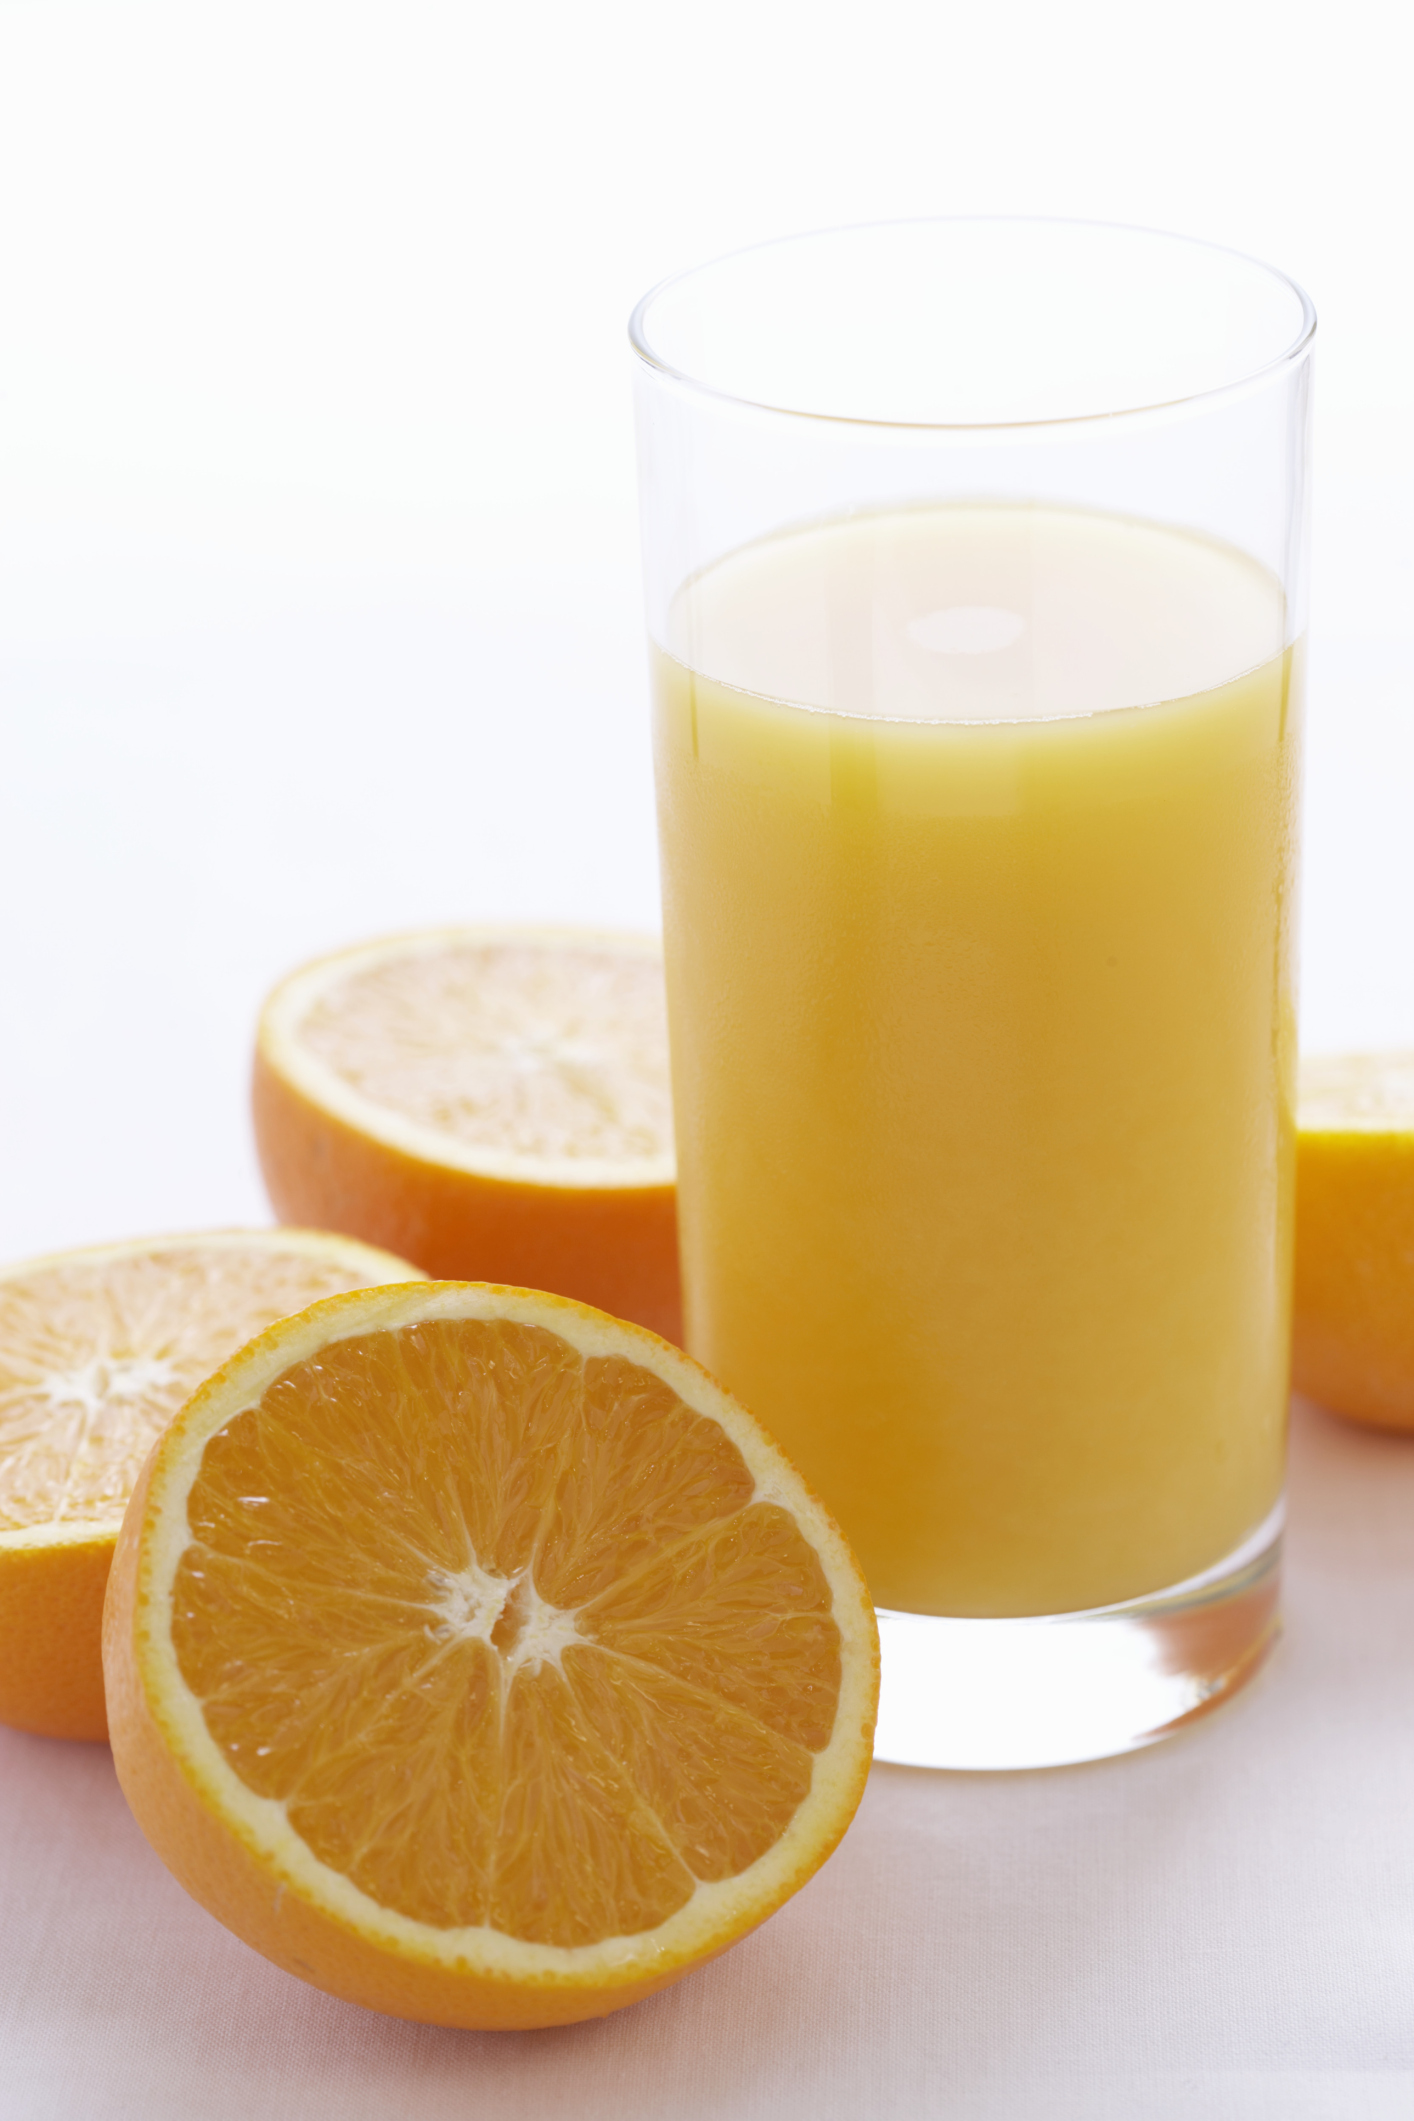 Orange juice is an excellent source of vitamin C.